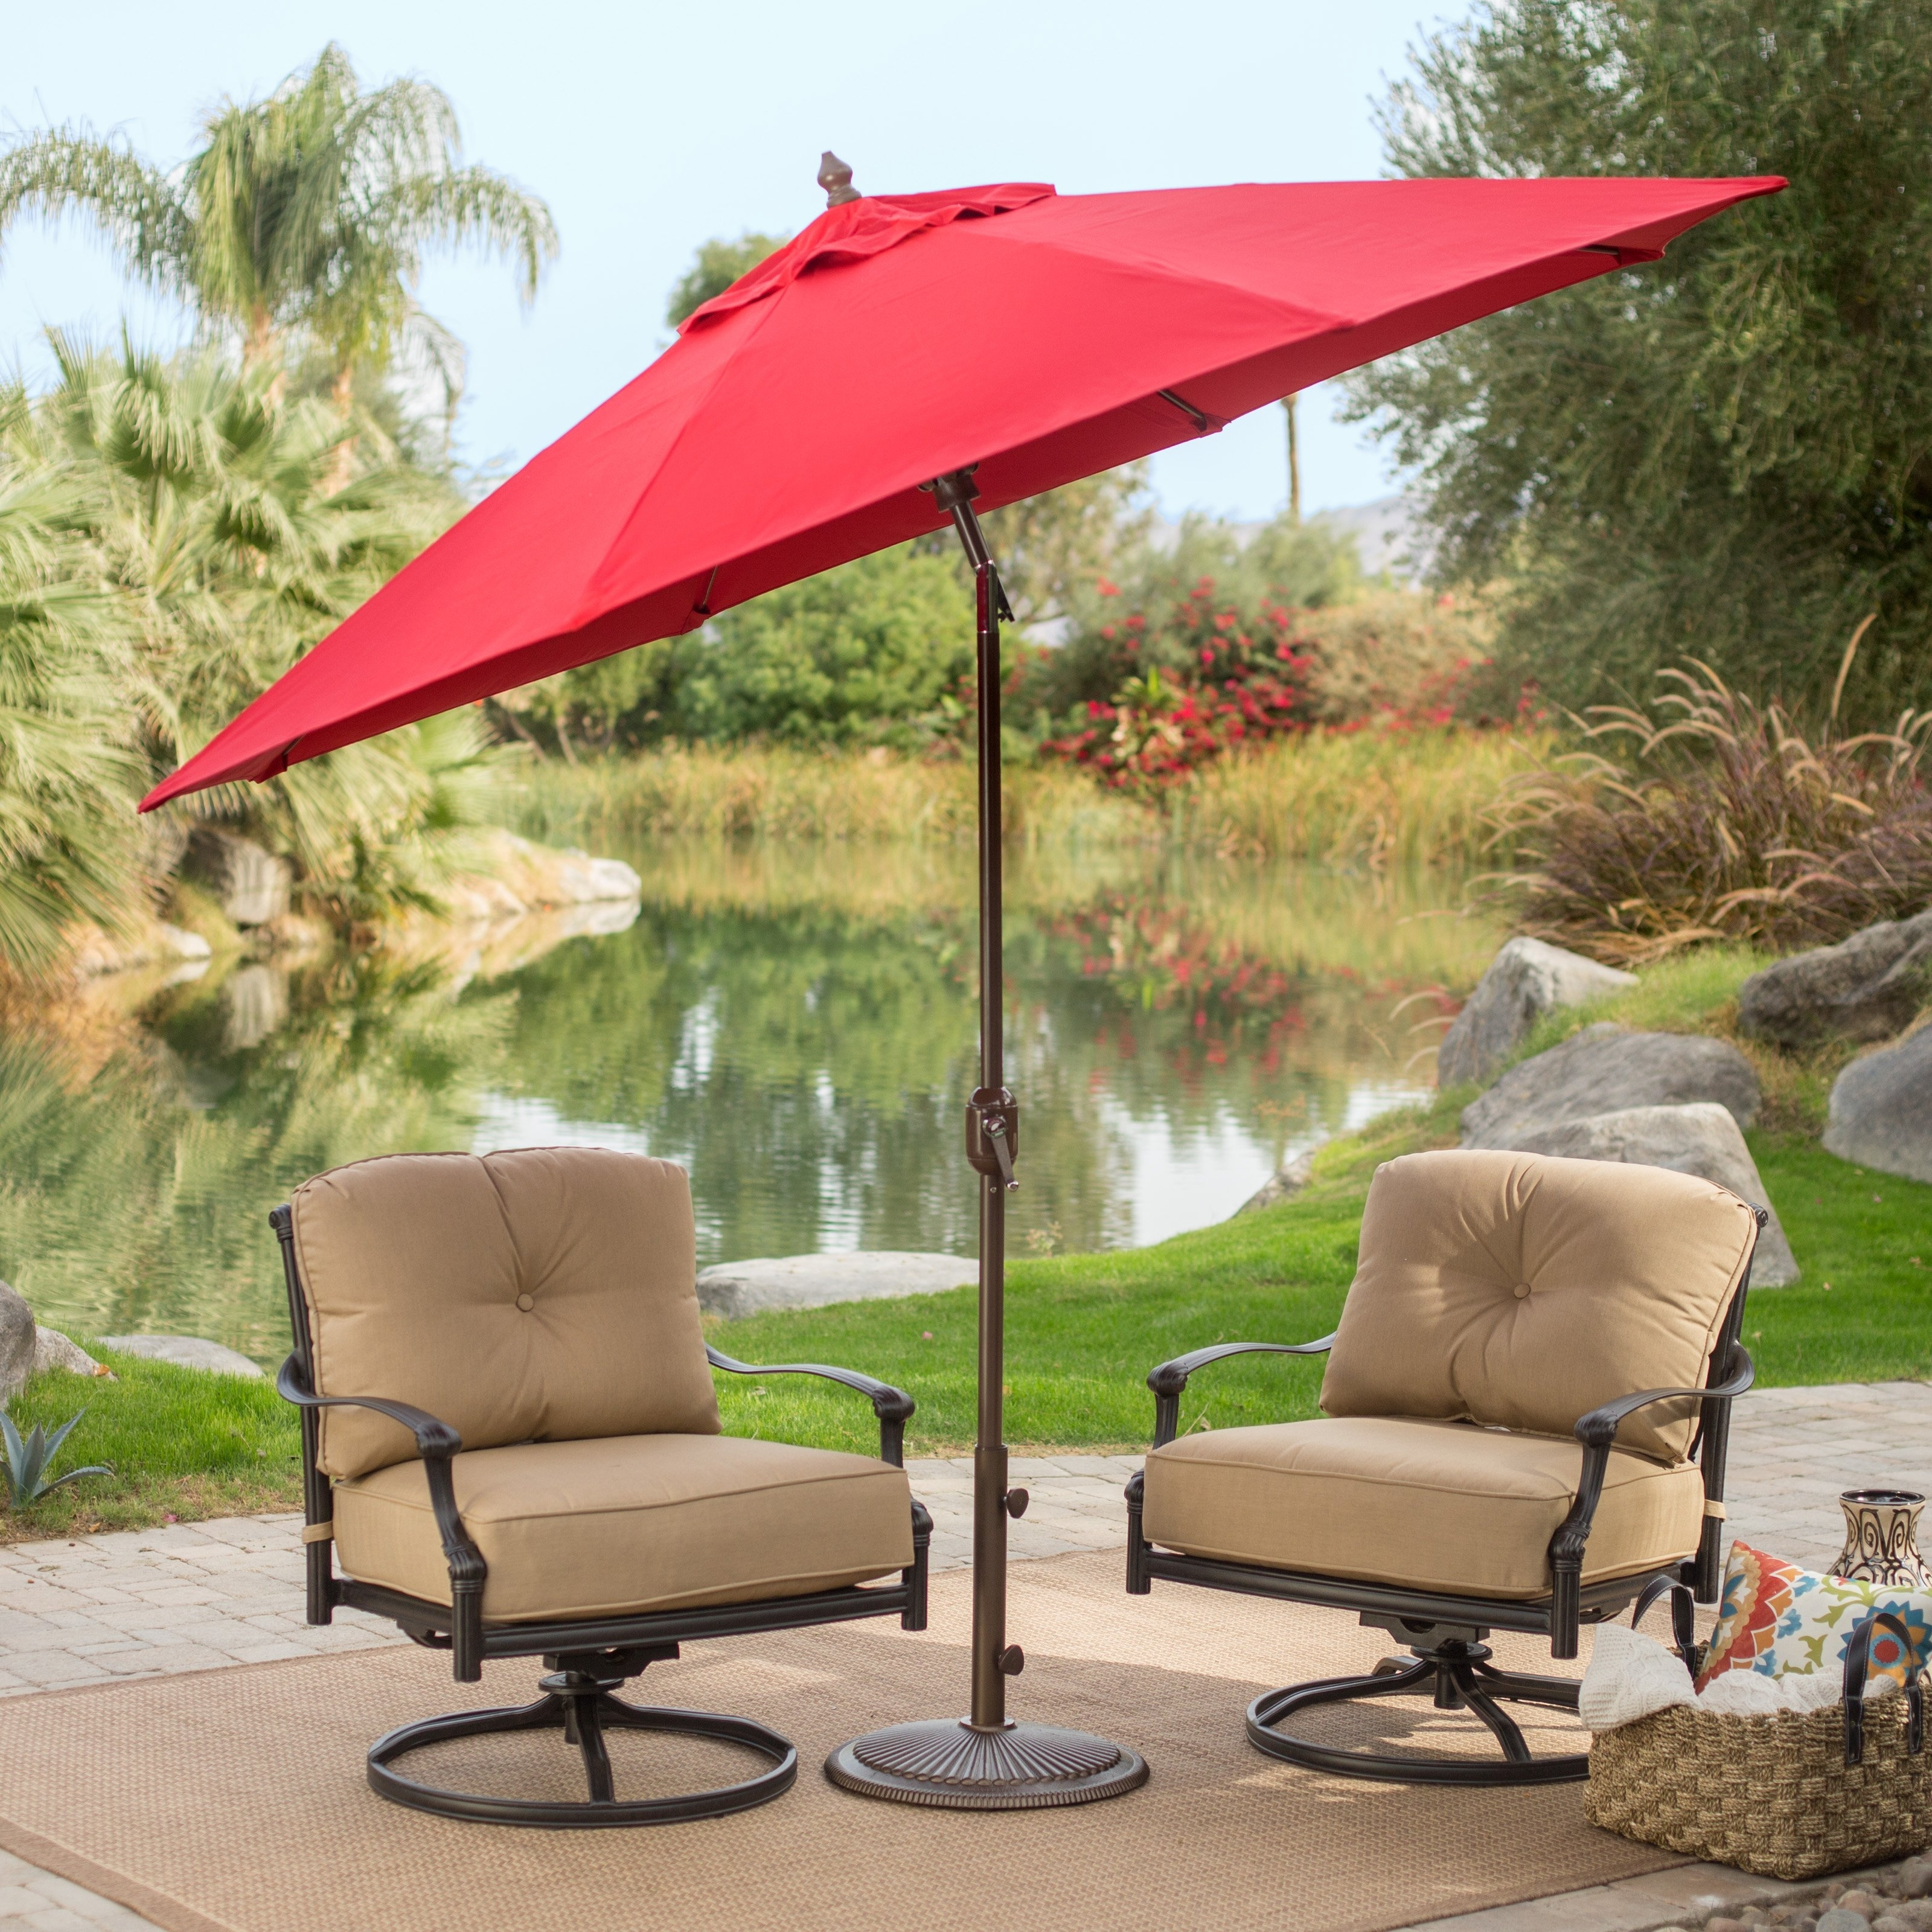 Famous Sunbrella Patio Table Umbrellas Regarding Coral Coast 9 Ft (View 4 of 20)